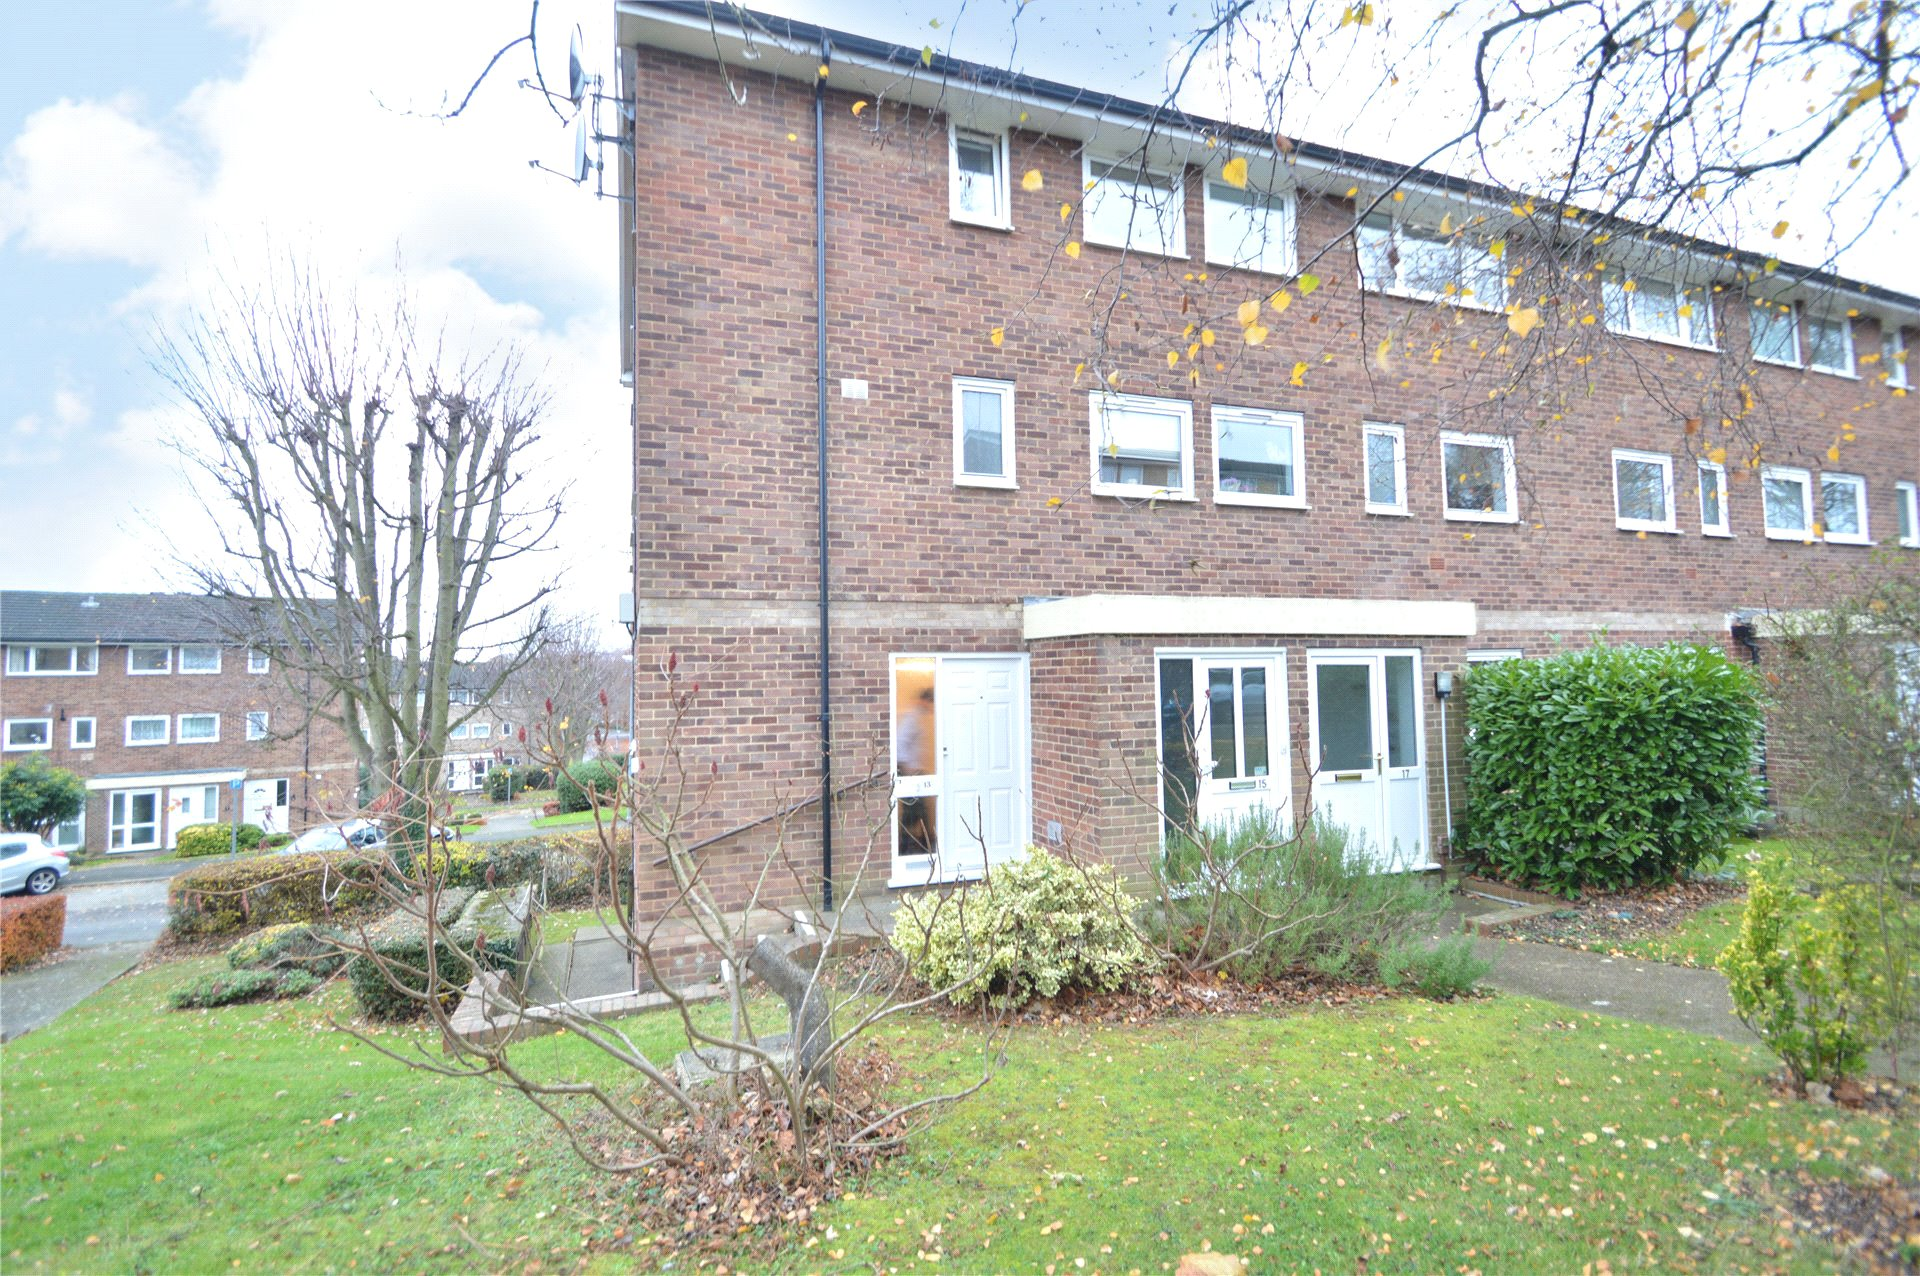 3 Bedrooms Apartment Flat for sale in Denham Close, Maidenhead, Berkshire, SL6